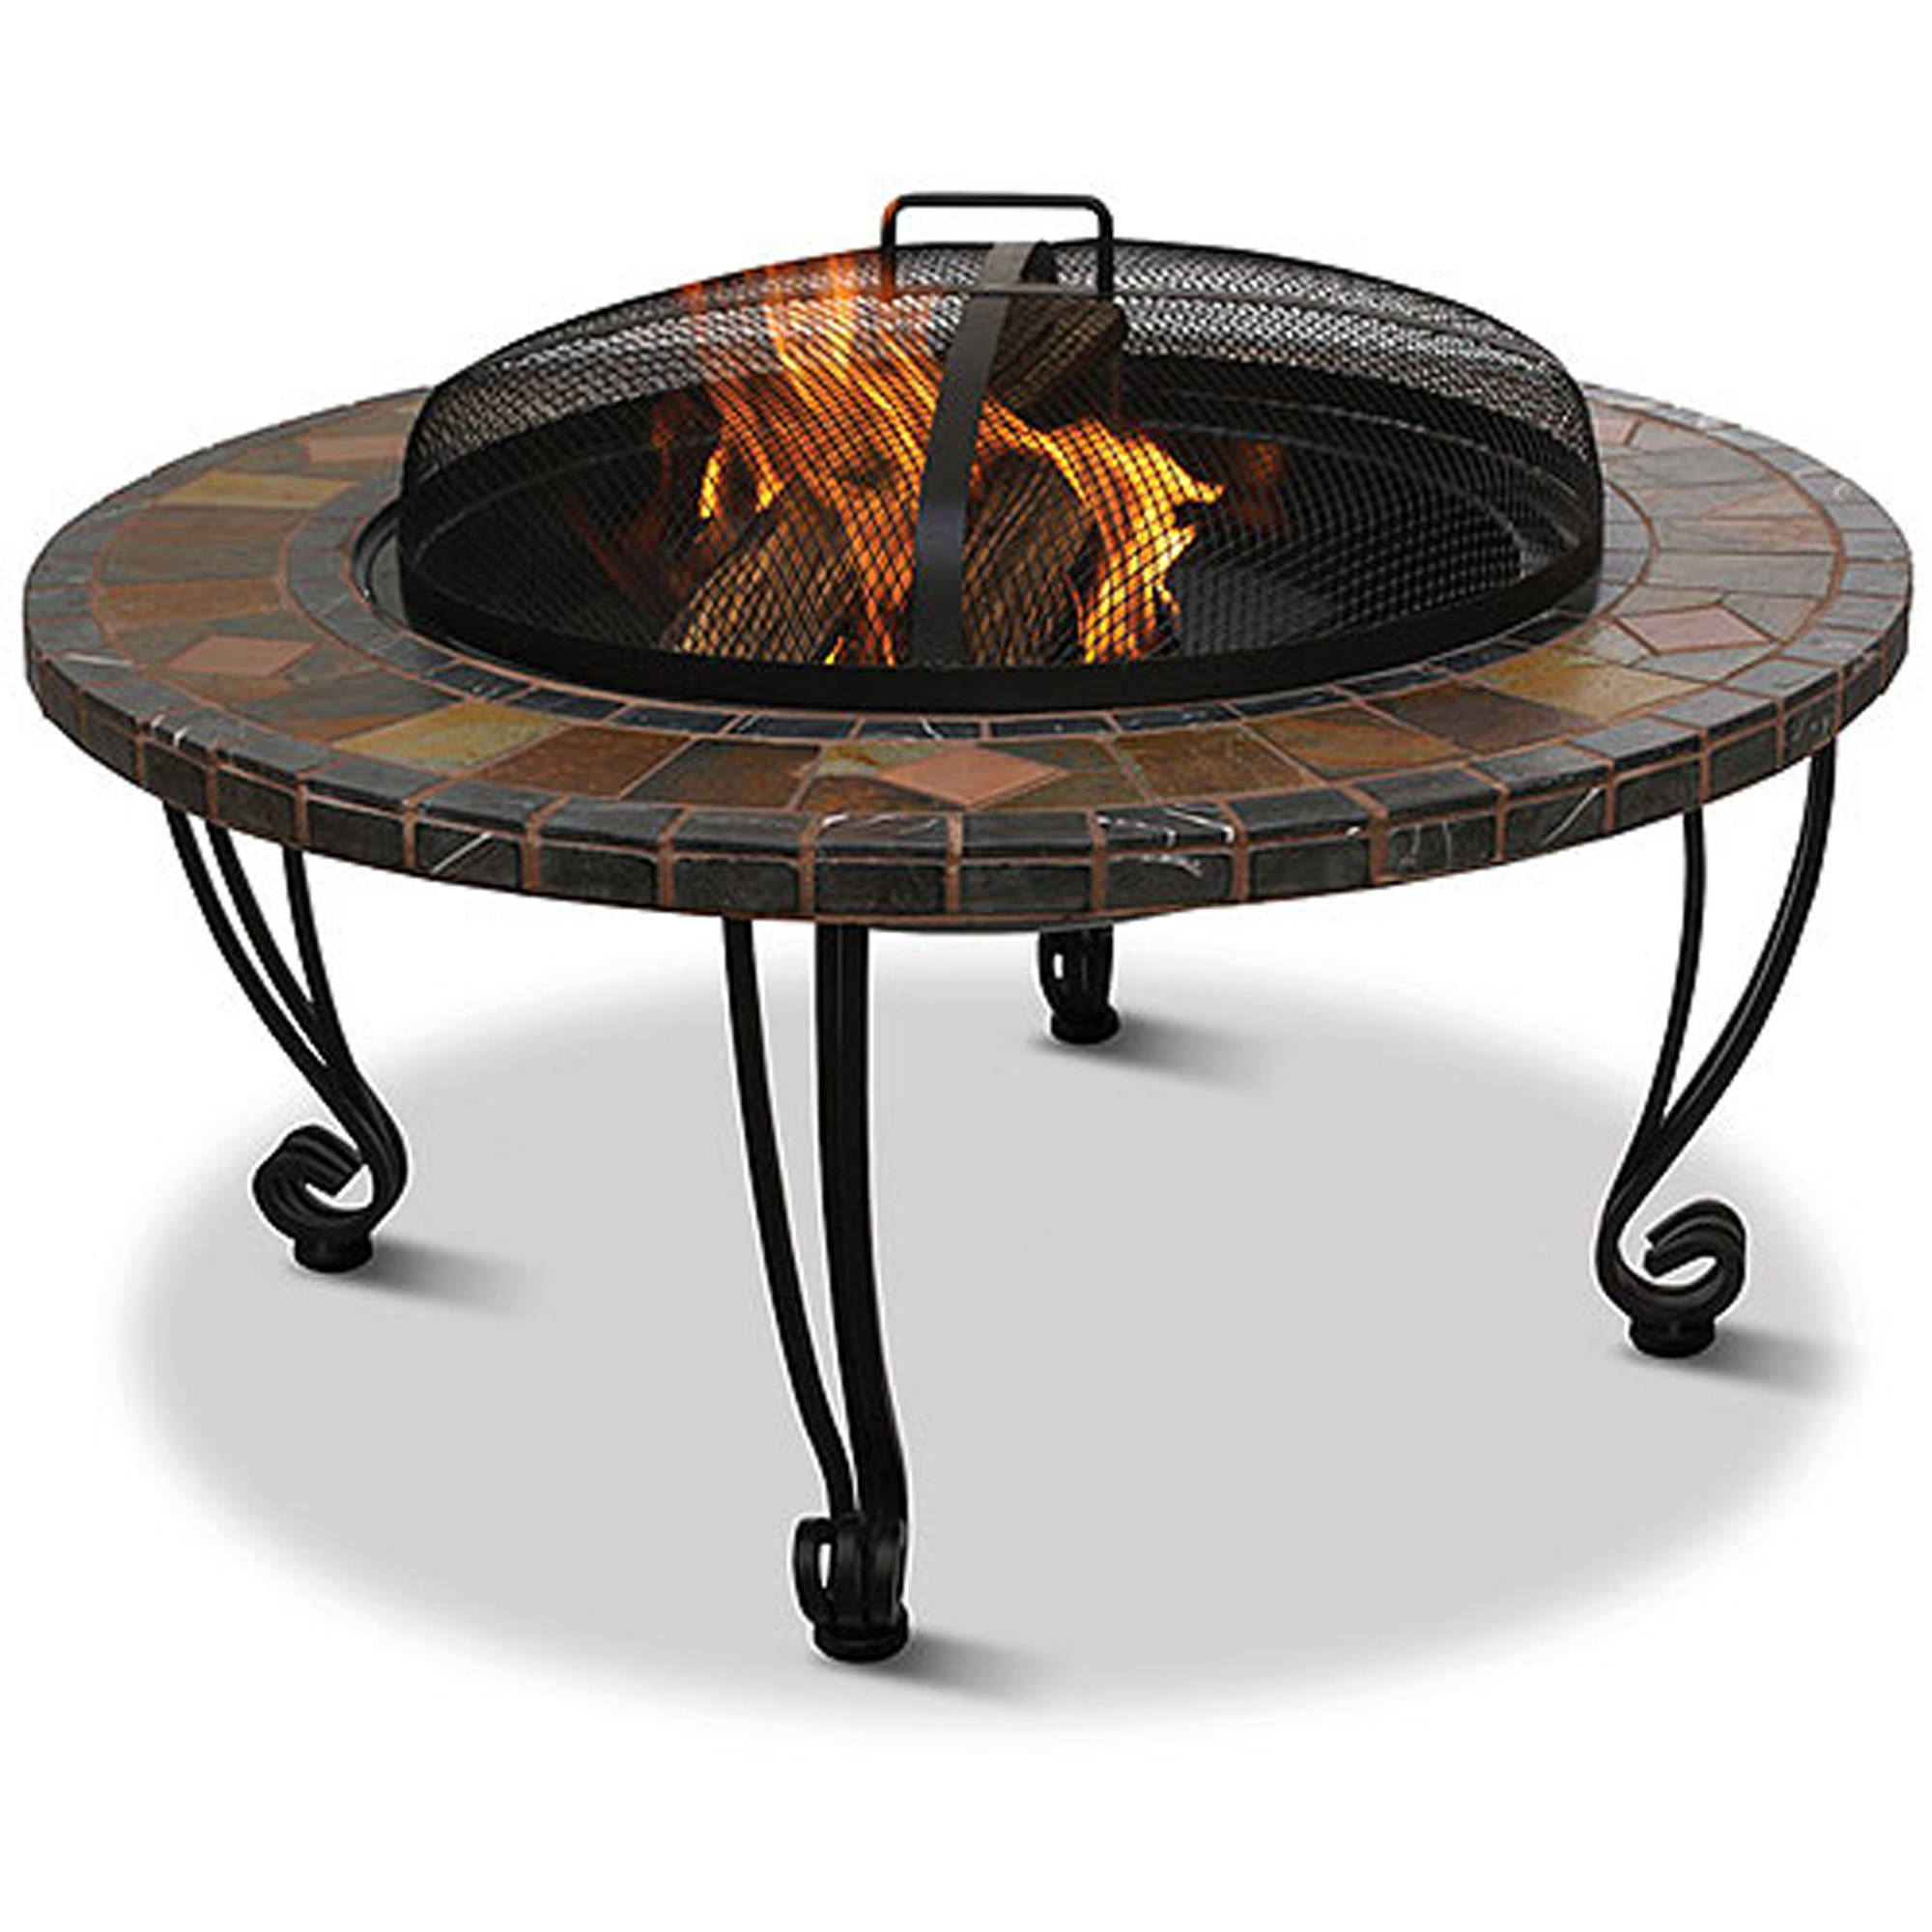 Genial Uniflame Slate And Marble Fire Pit   Walmart.com